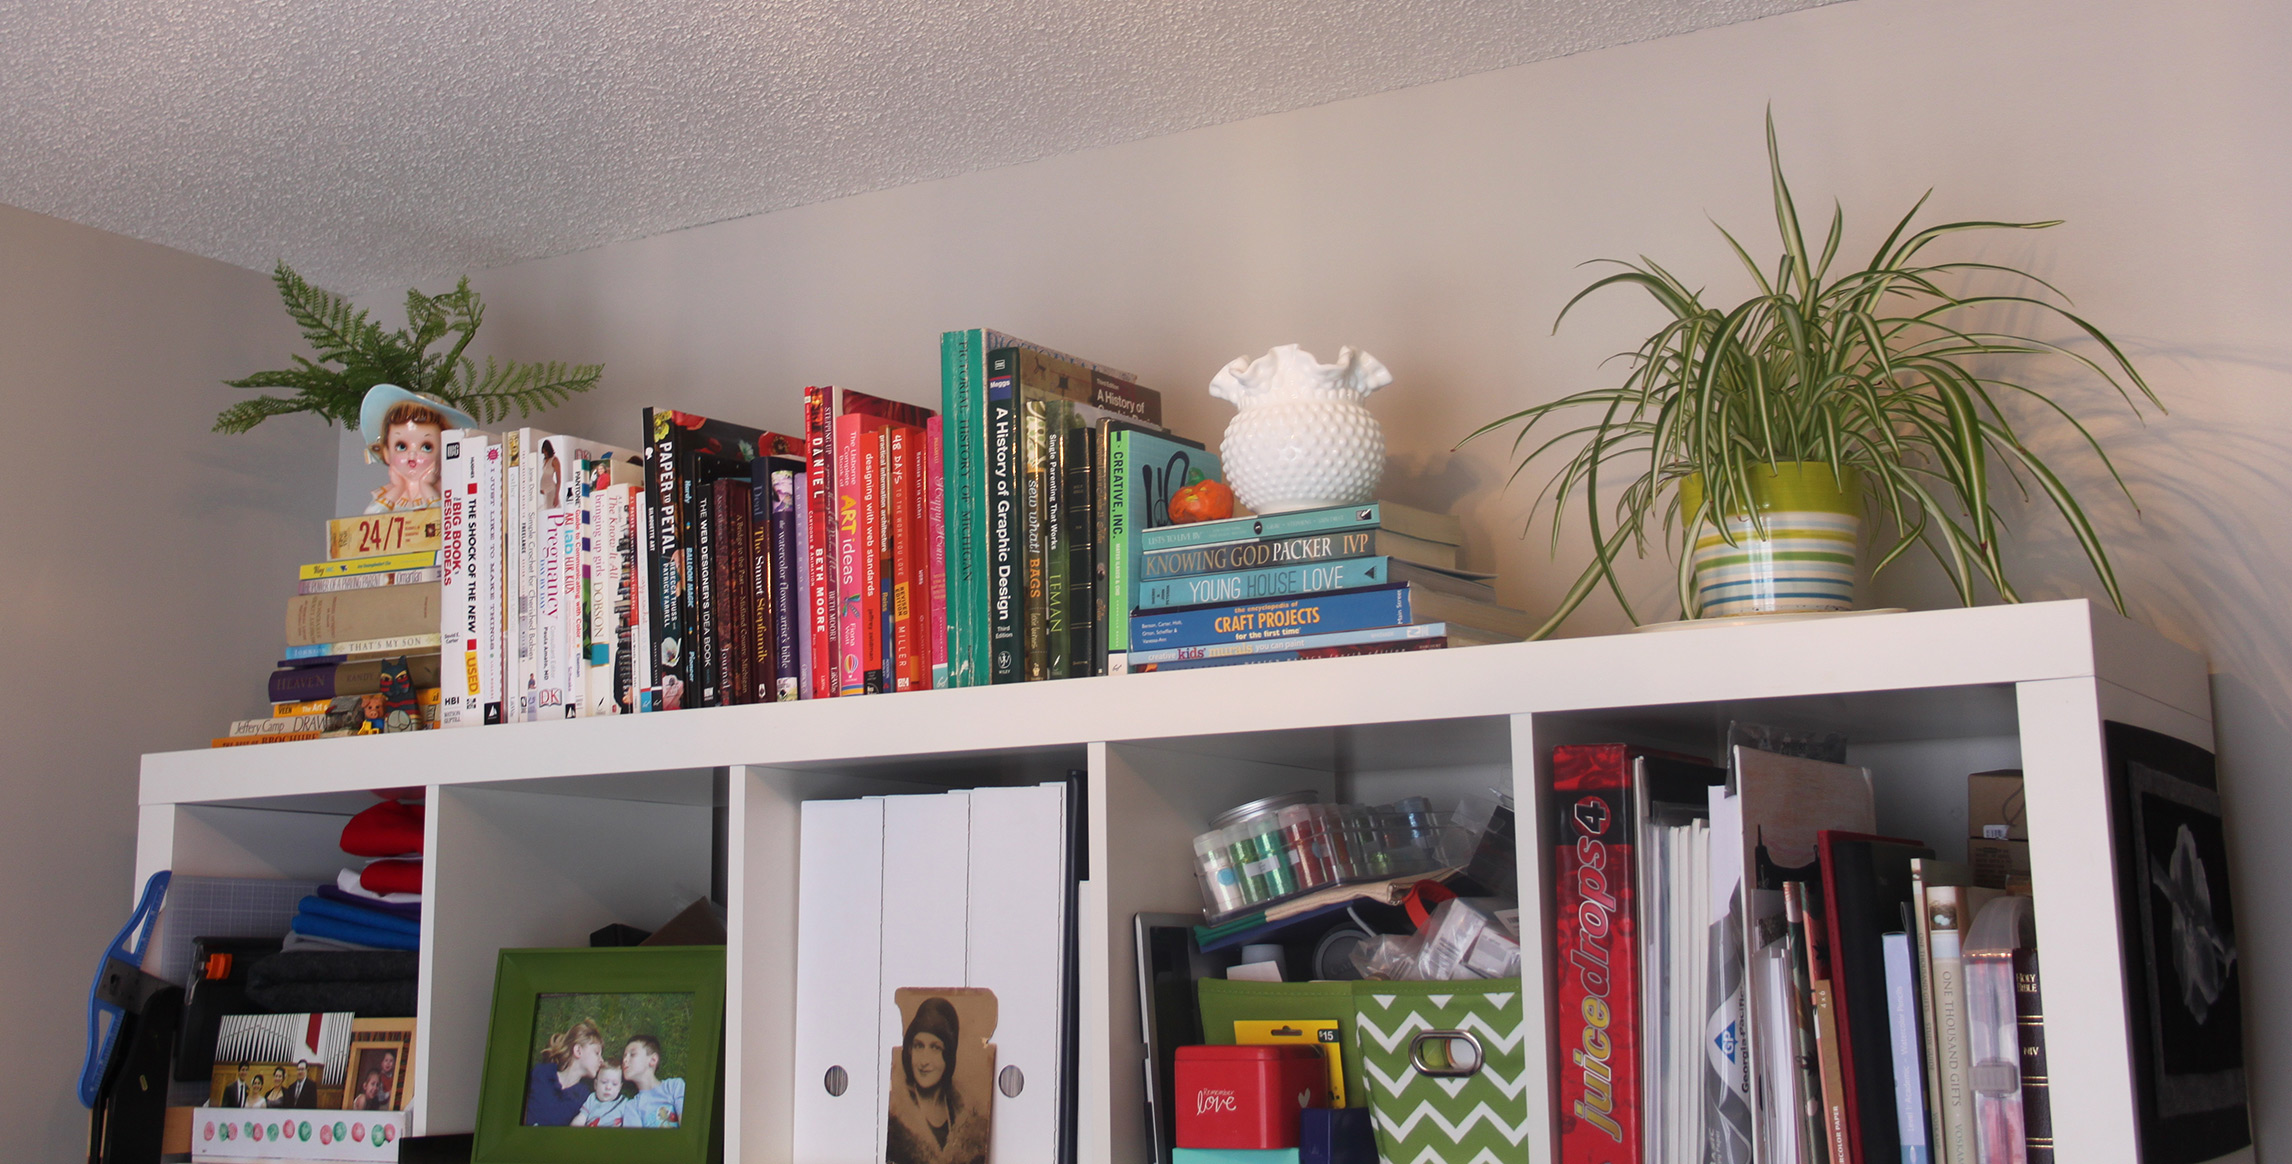 I did get the top of the shelf done which I love! I mean, who doesn't love books arranged by spine color?